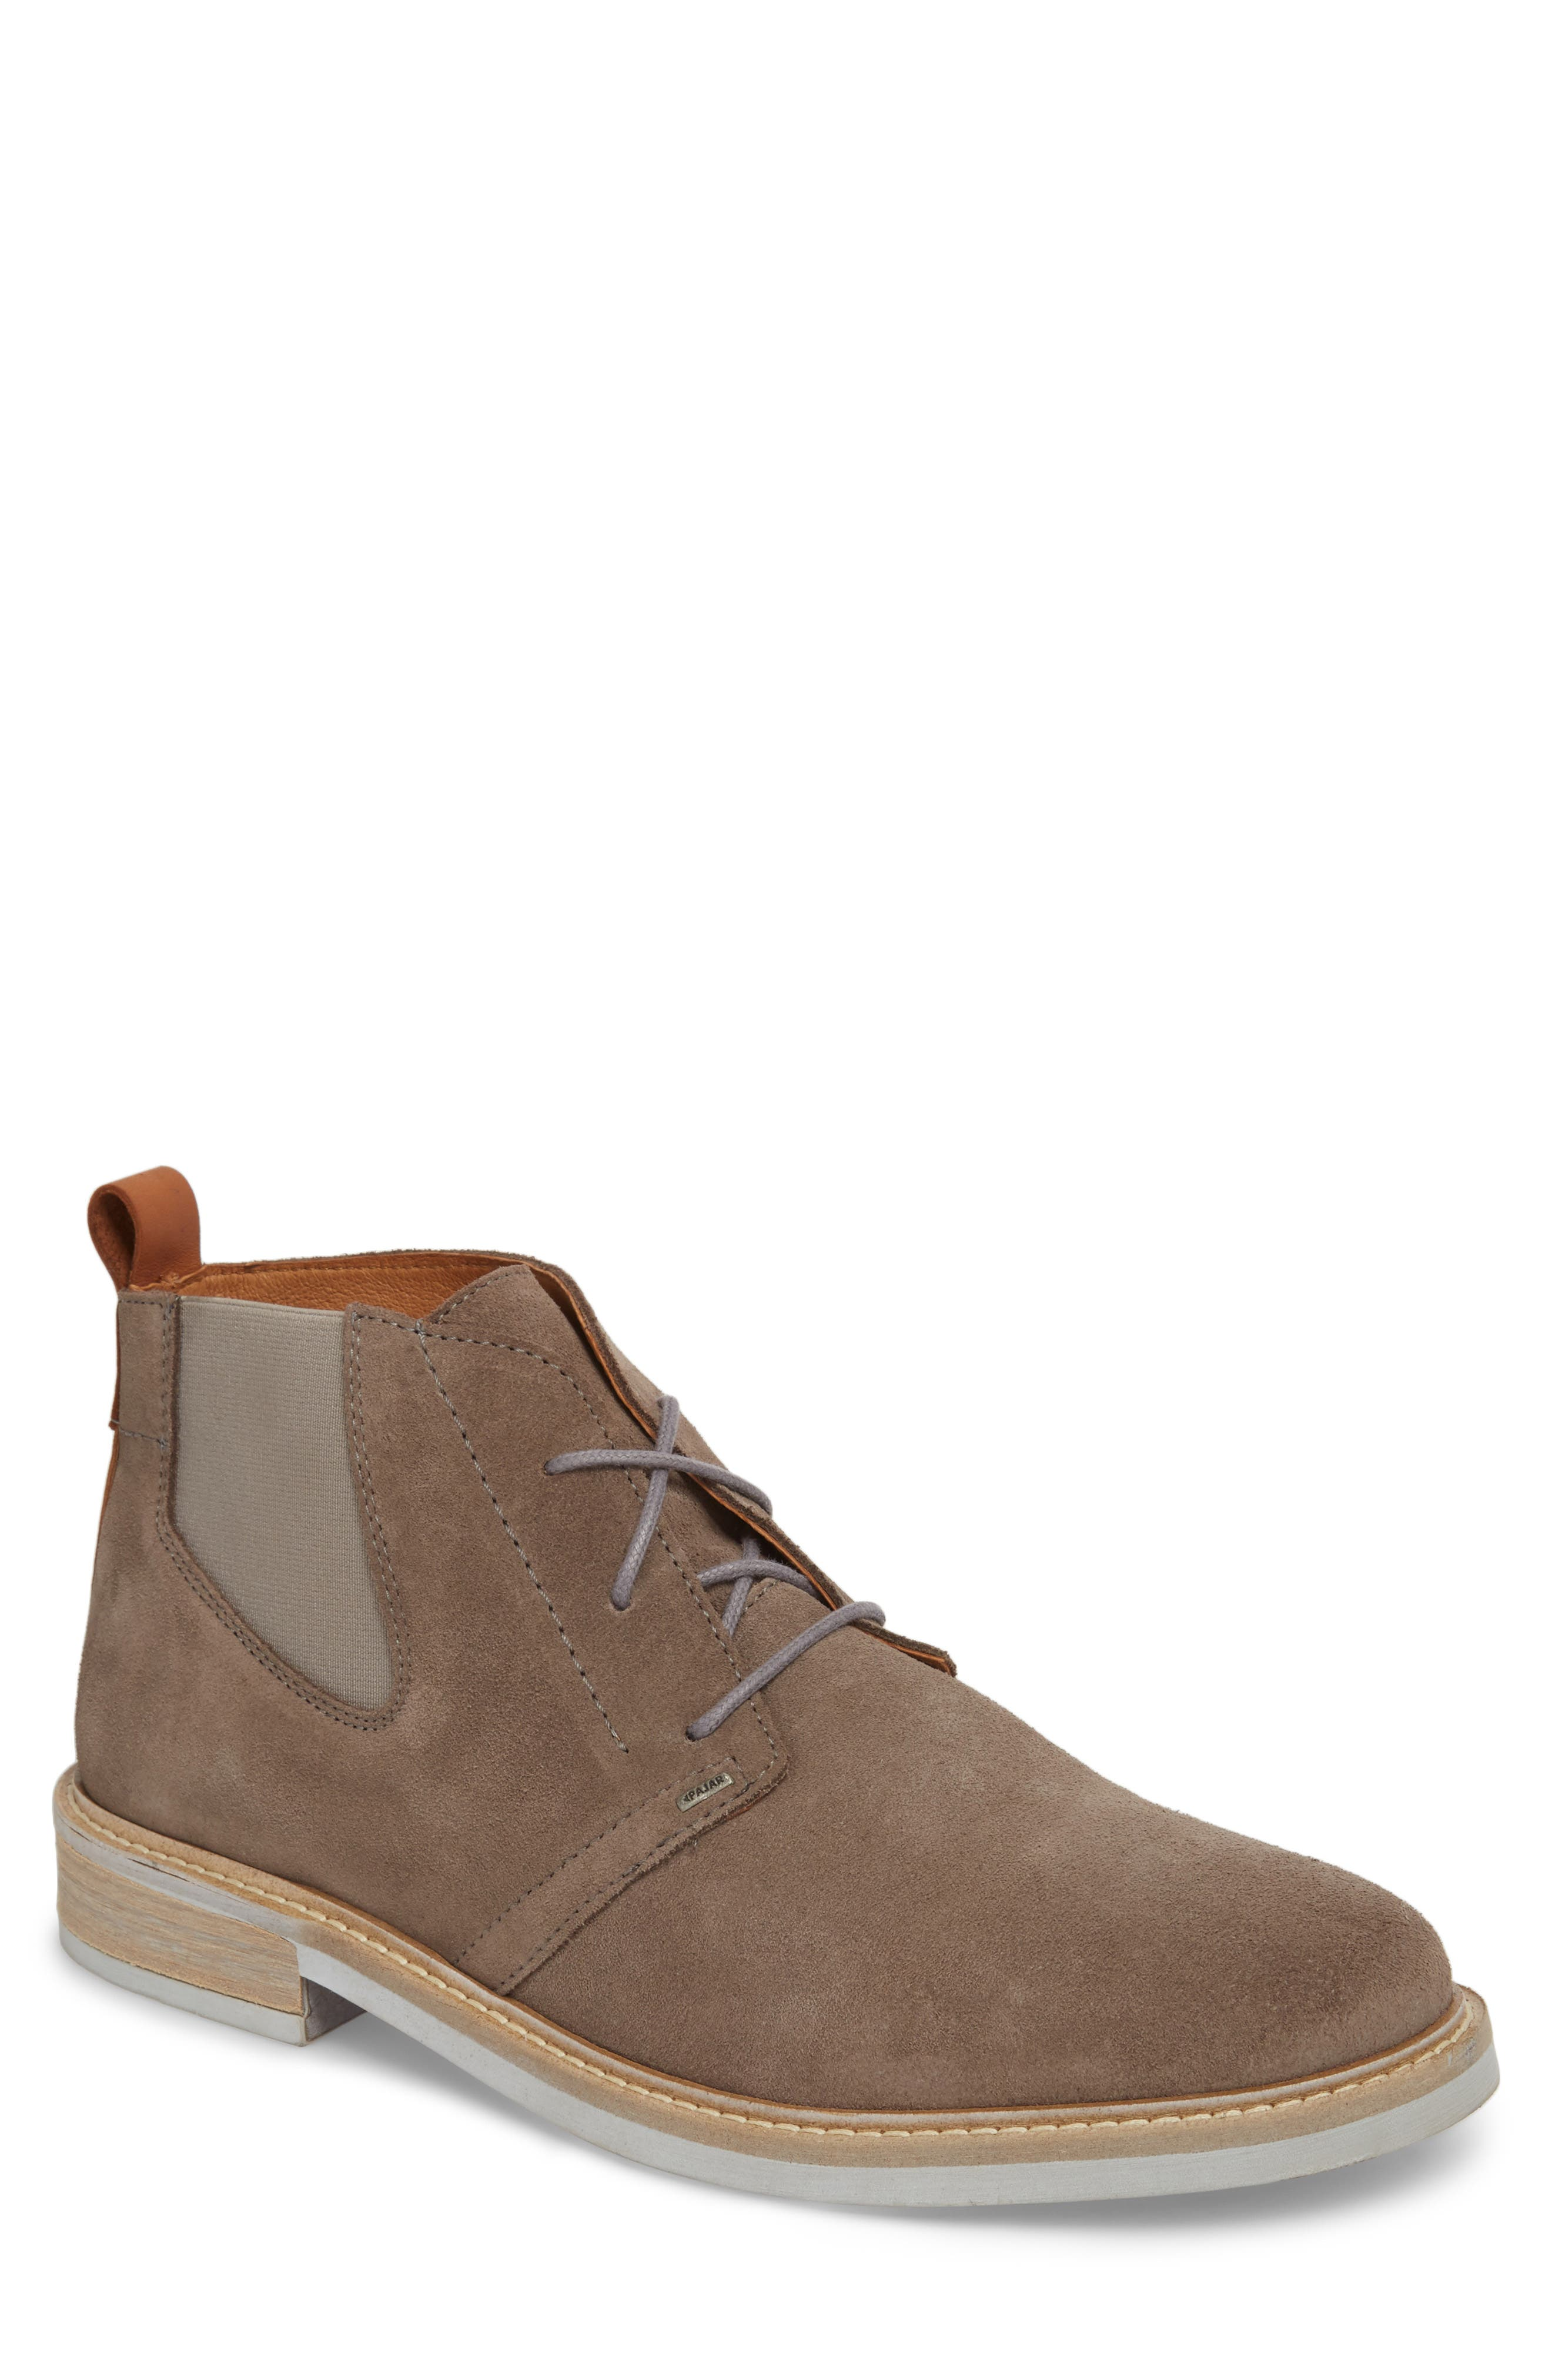 PAJAR Jameson Water Resistant Chukka Boot in Anthracite